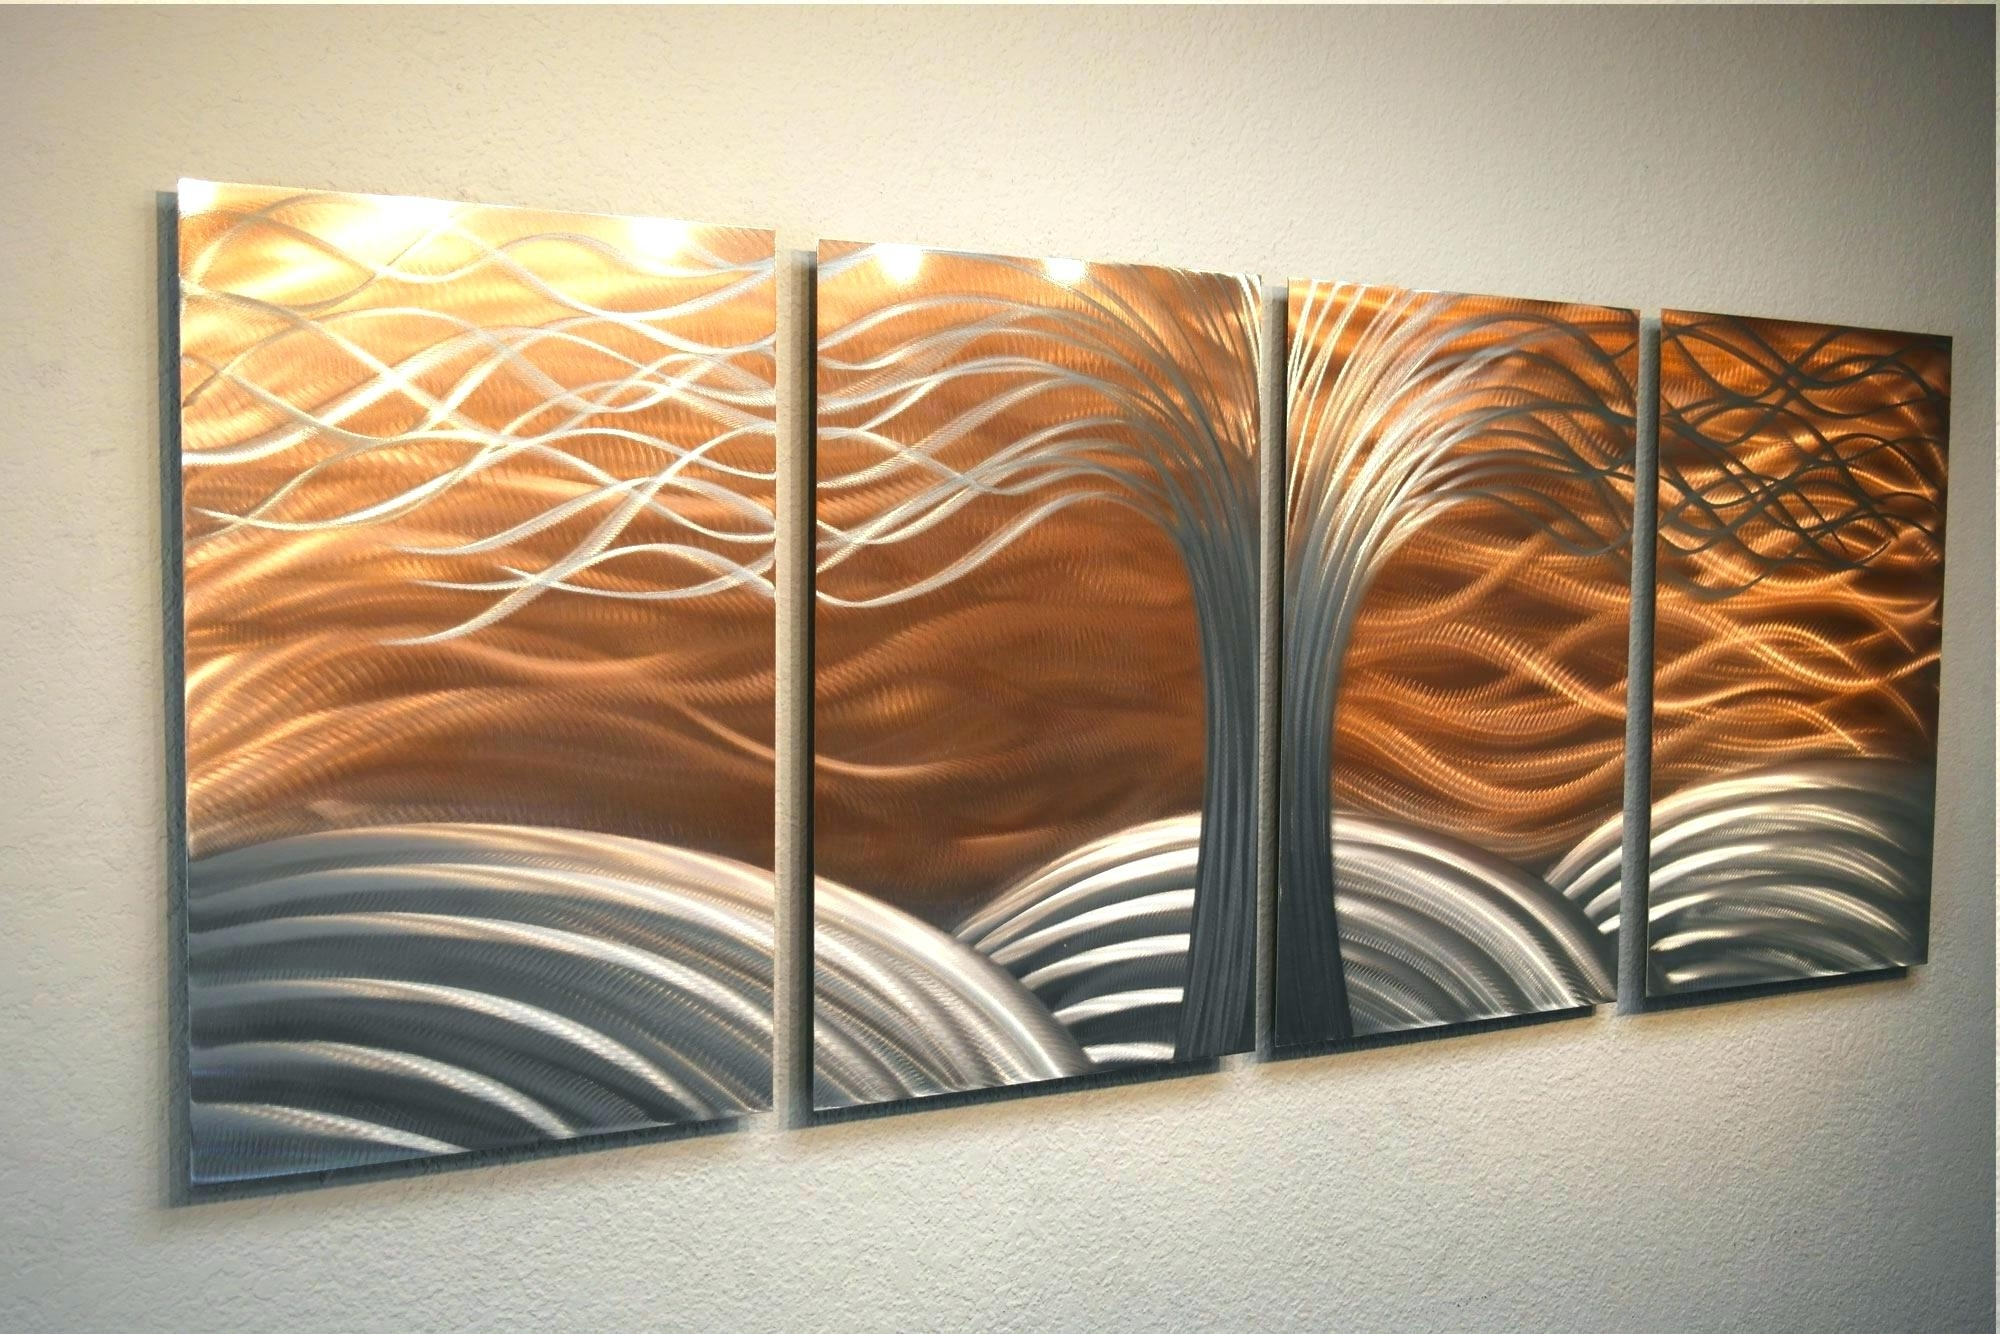 Abstract Metal Wall Art Australia Regarding Favorite Wall Arts ~ Modern Metal Wall Art Australia Modern Metal Wall Art (View 5 of 15)